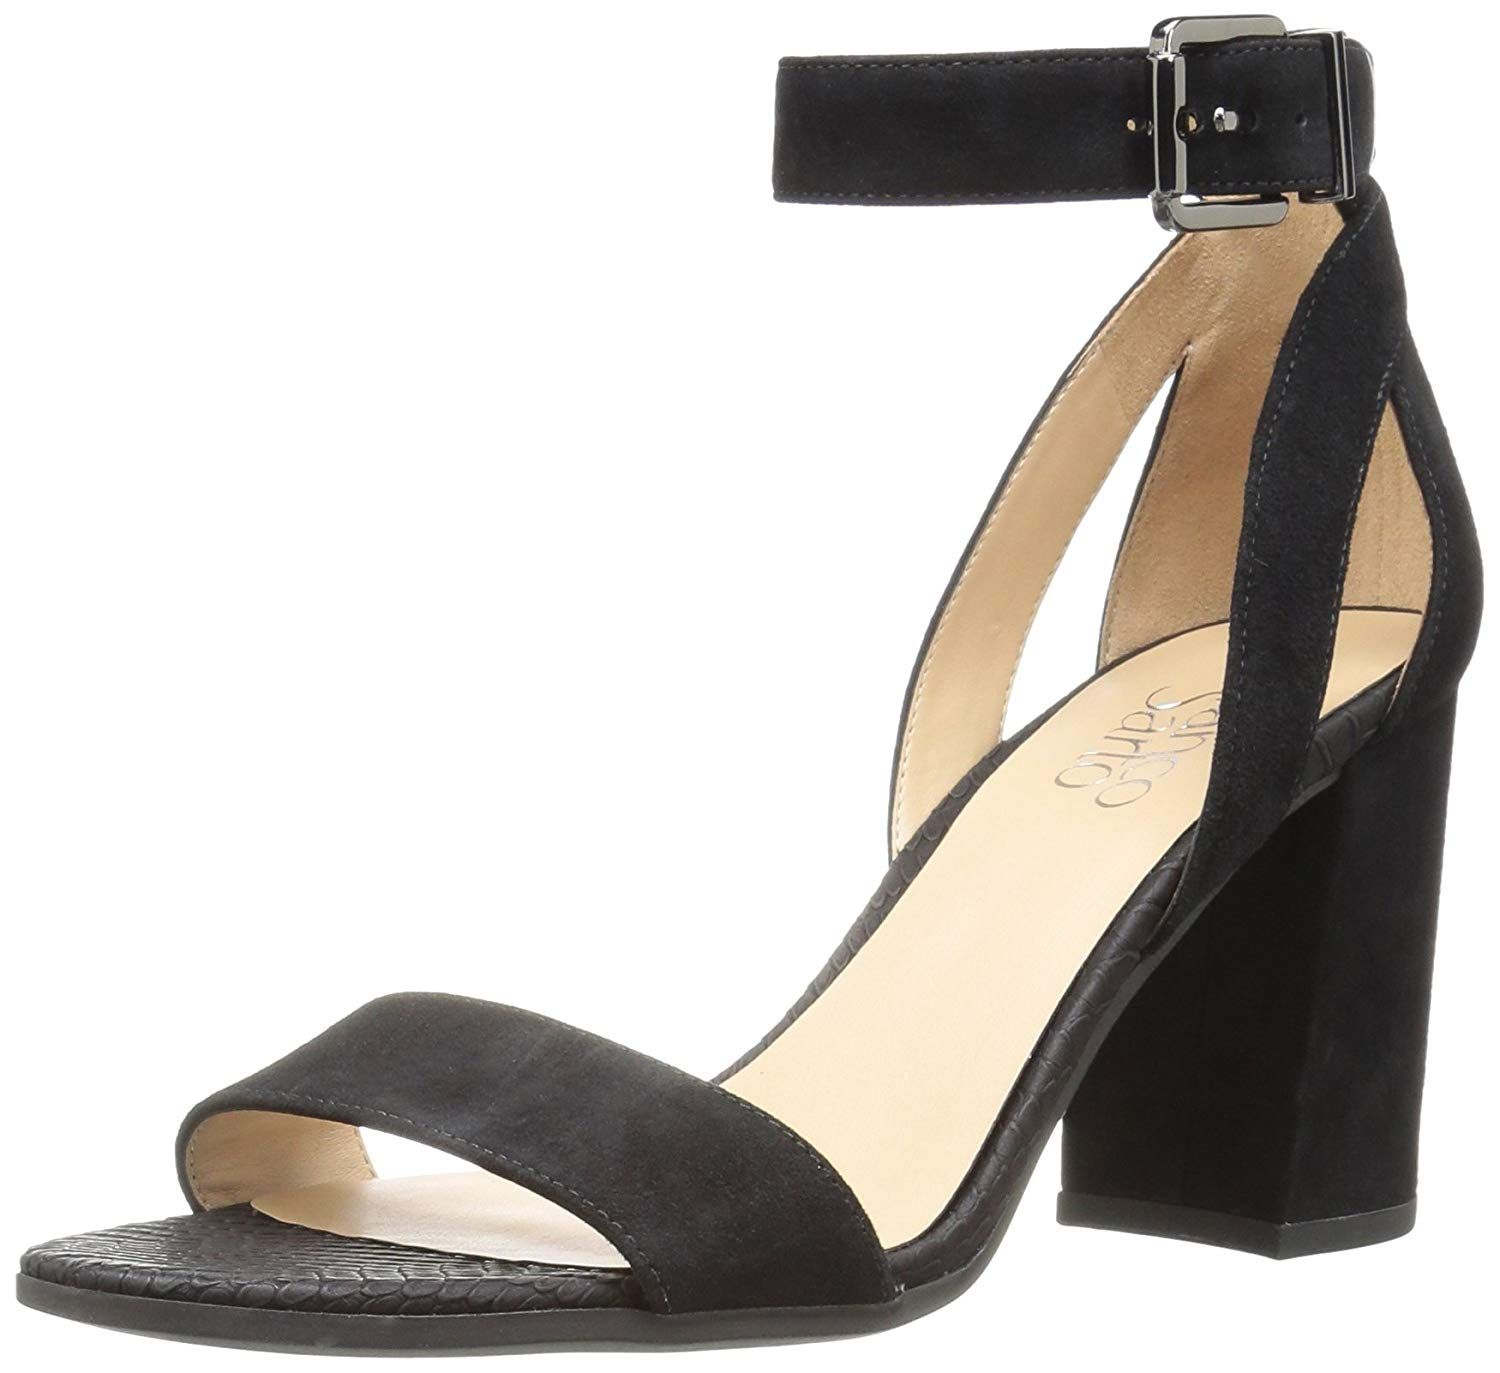 e23fc1f21eea Franco Sarto Women s Malibu Heeled Sandal. A dress pump%2Fsandal perfectly  suited for spring- with open side cutouts and flare heel. Women s Shoes